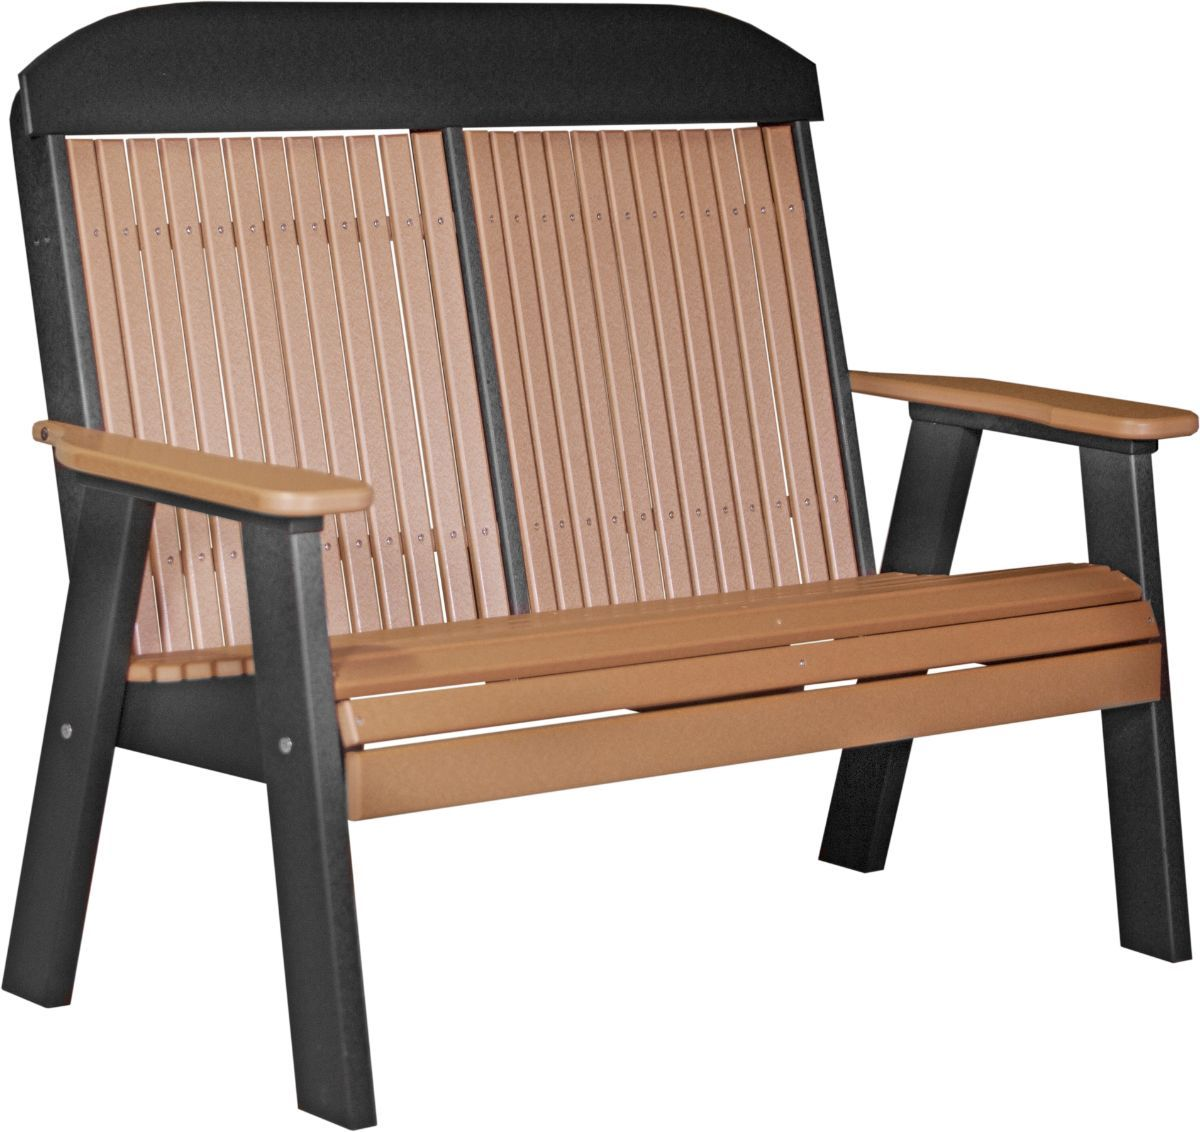 Cedar and Black Stockton Patio Bench